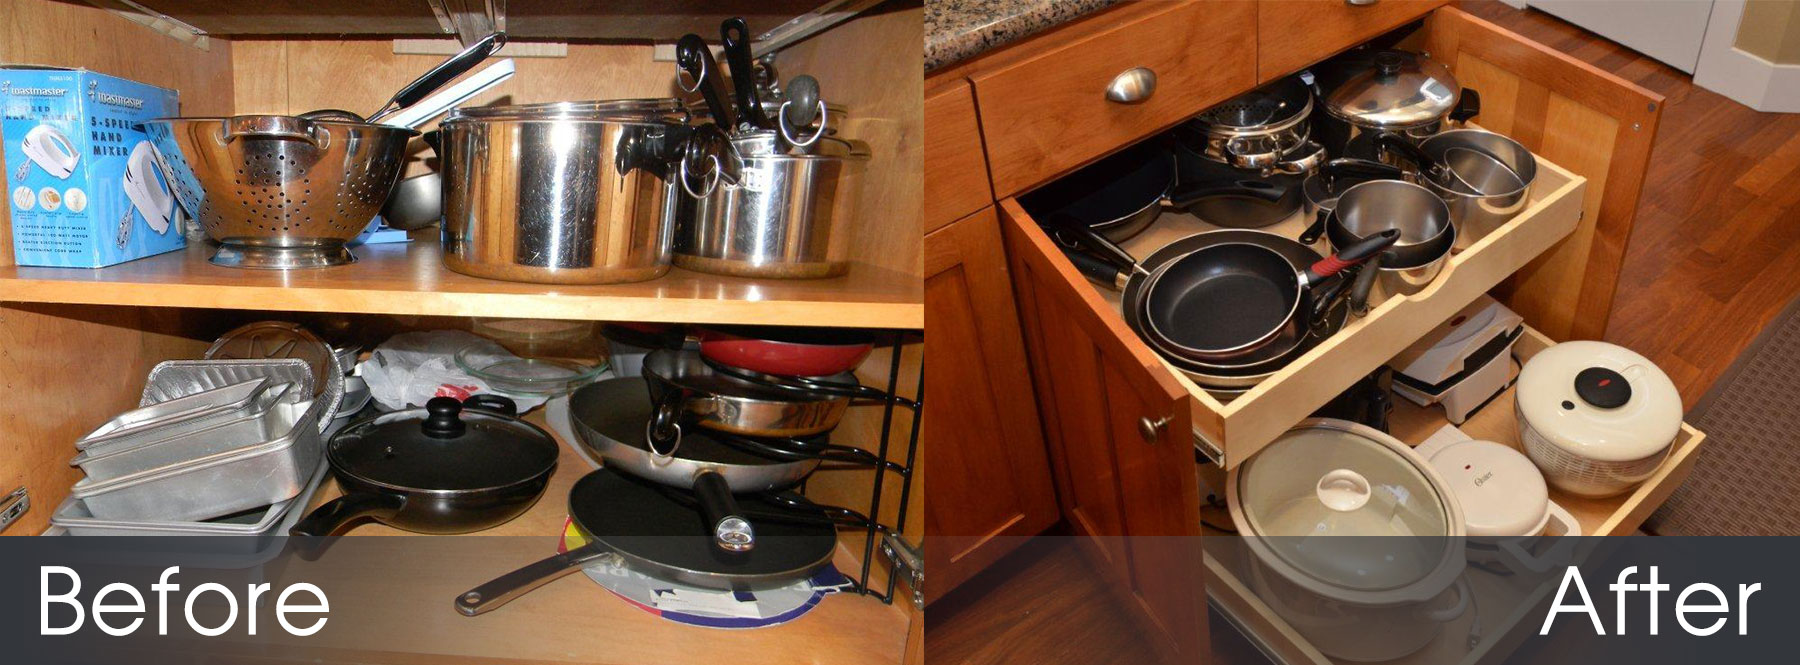 Before / After Shelve Image 2